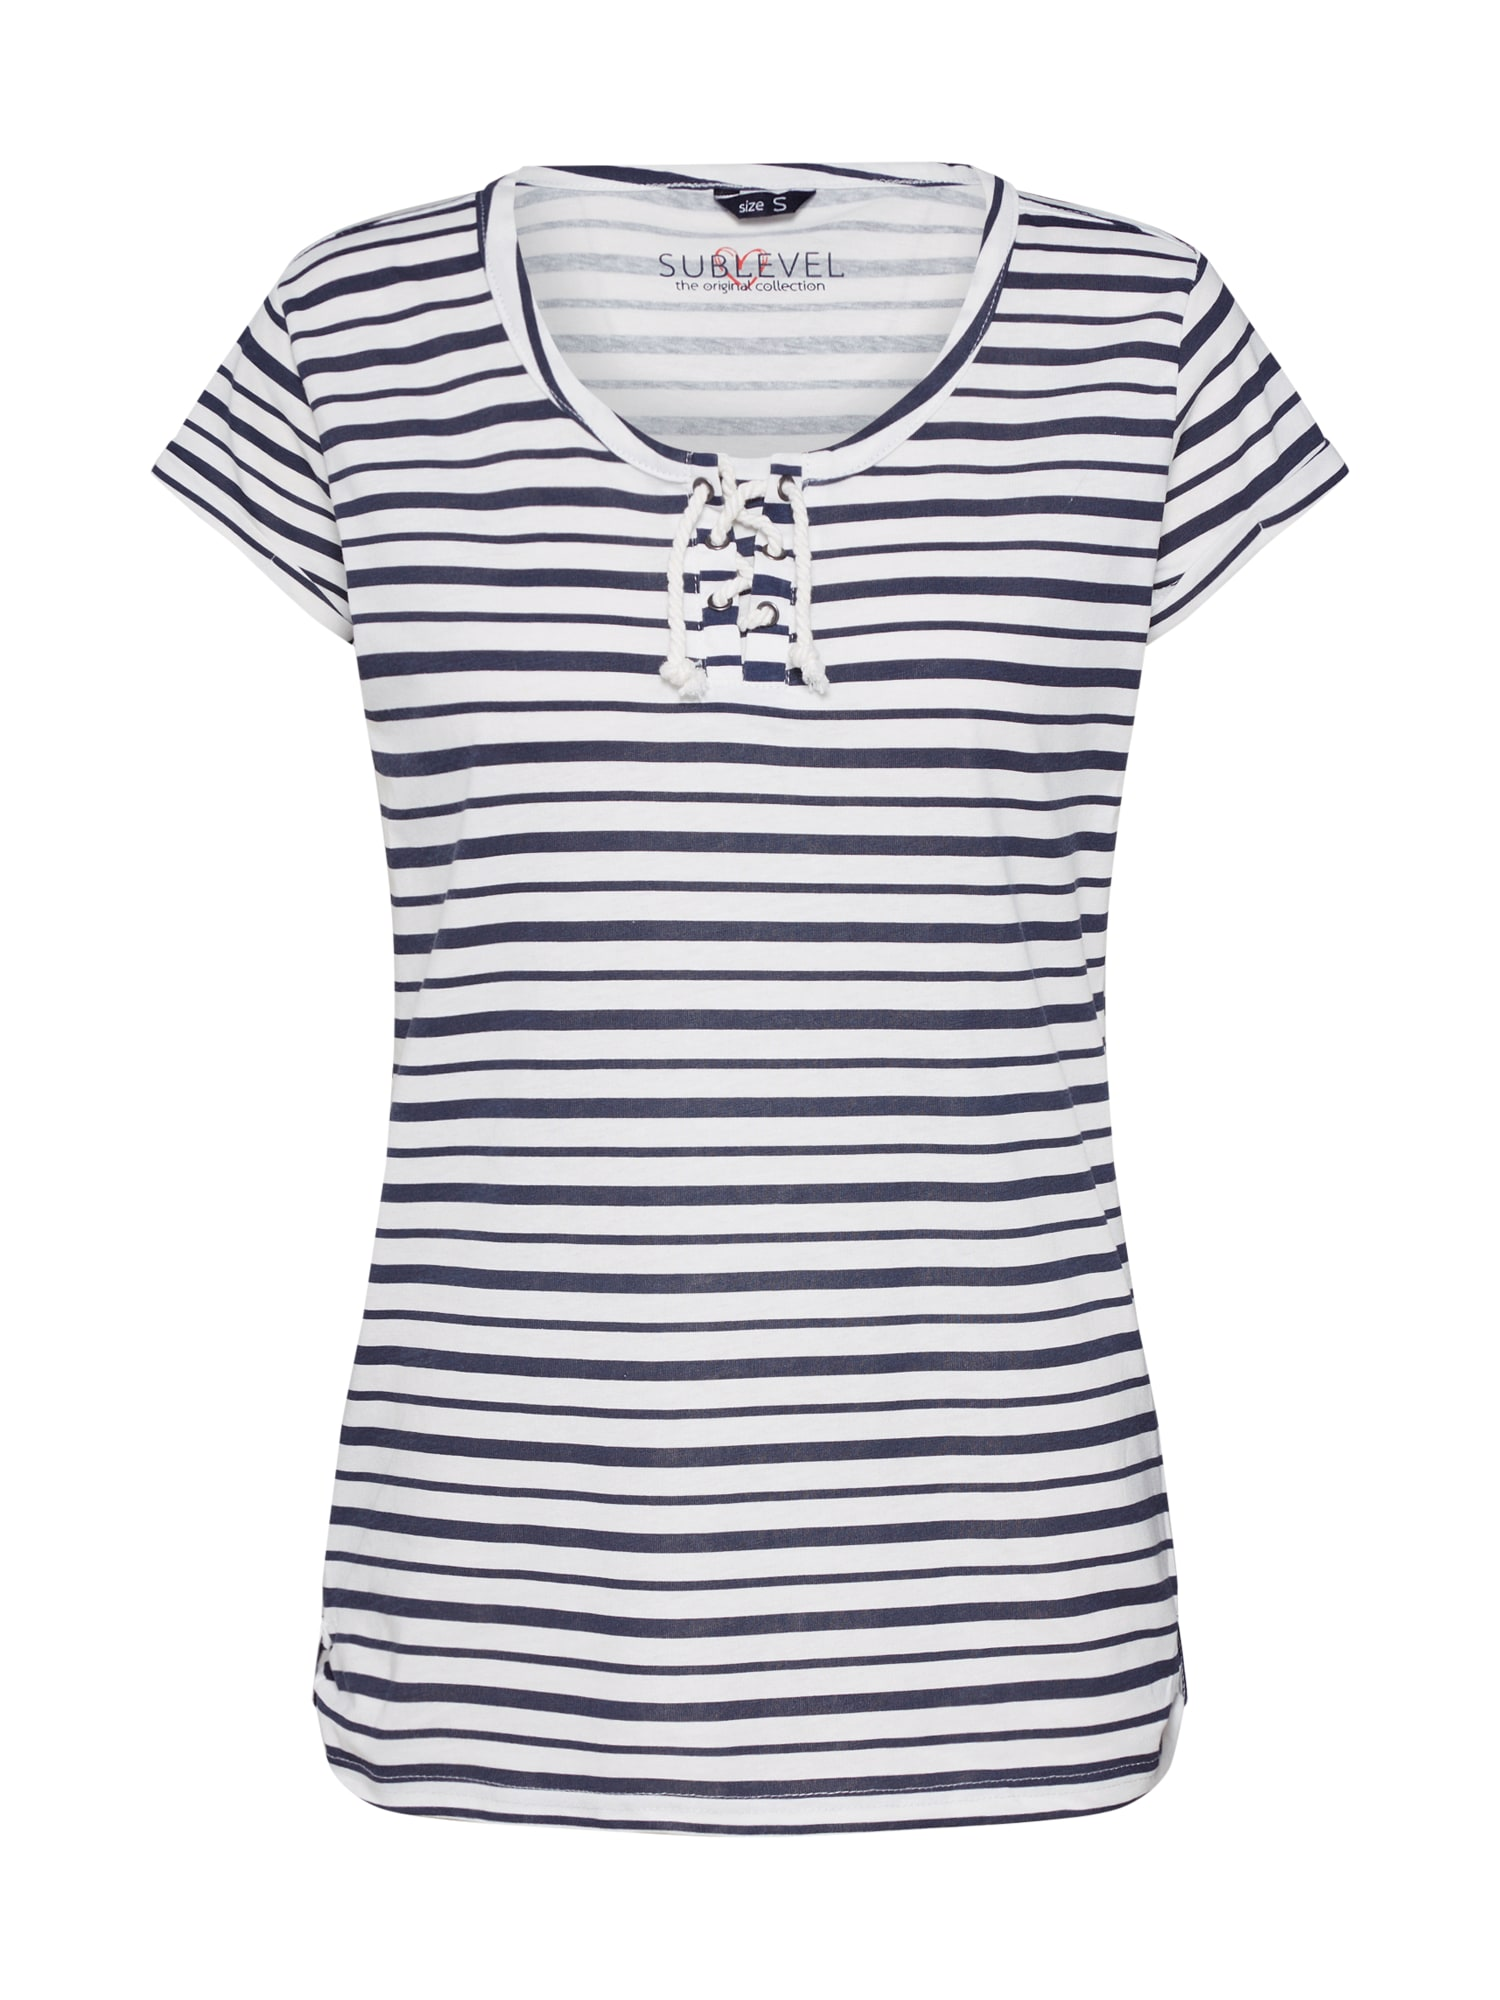 Sublevel Tricou  navy / offwhite